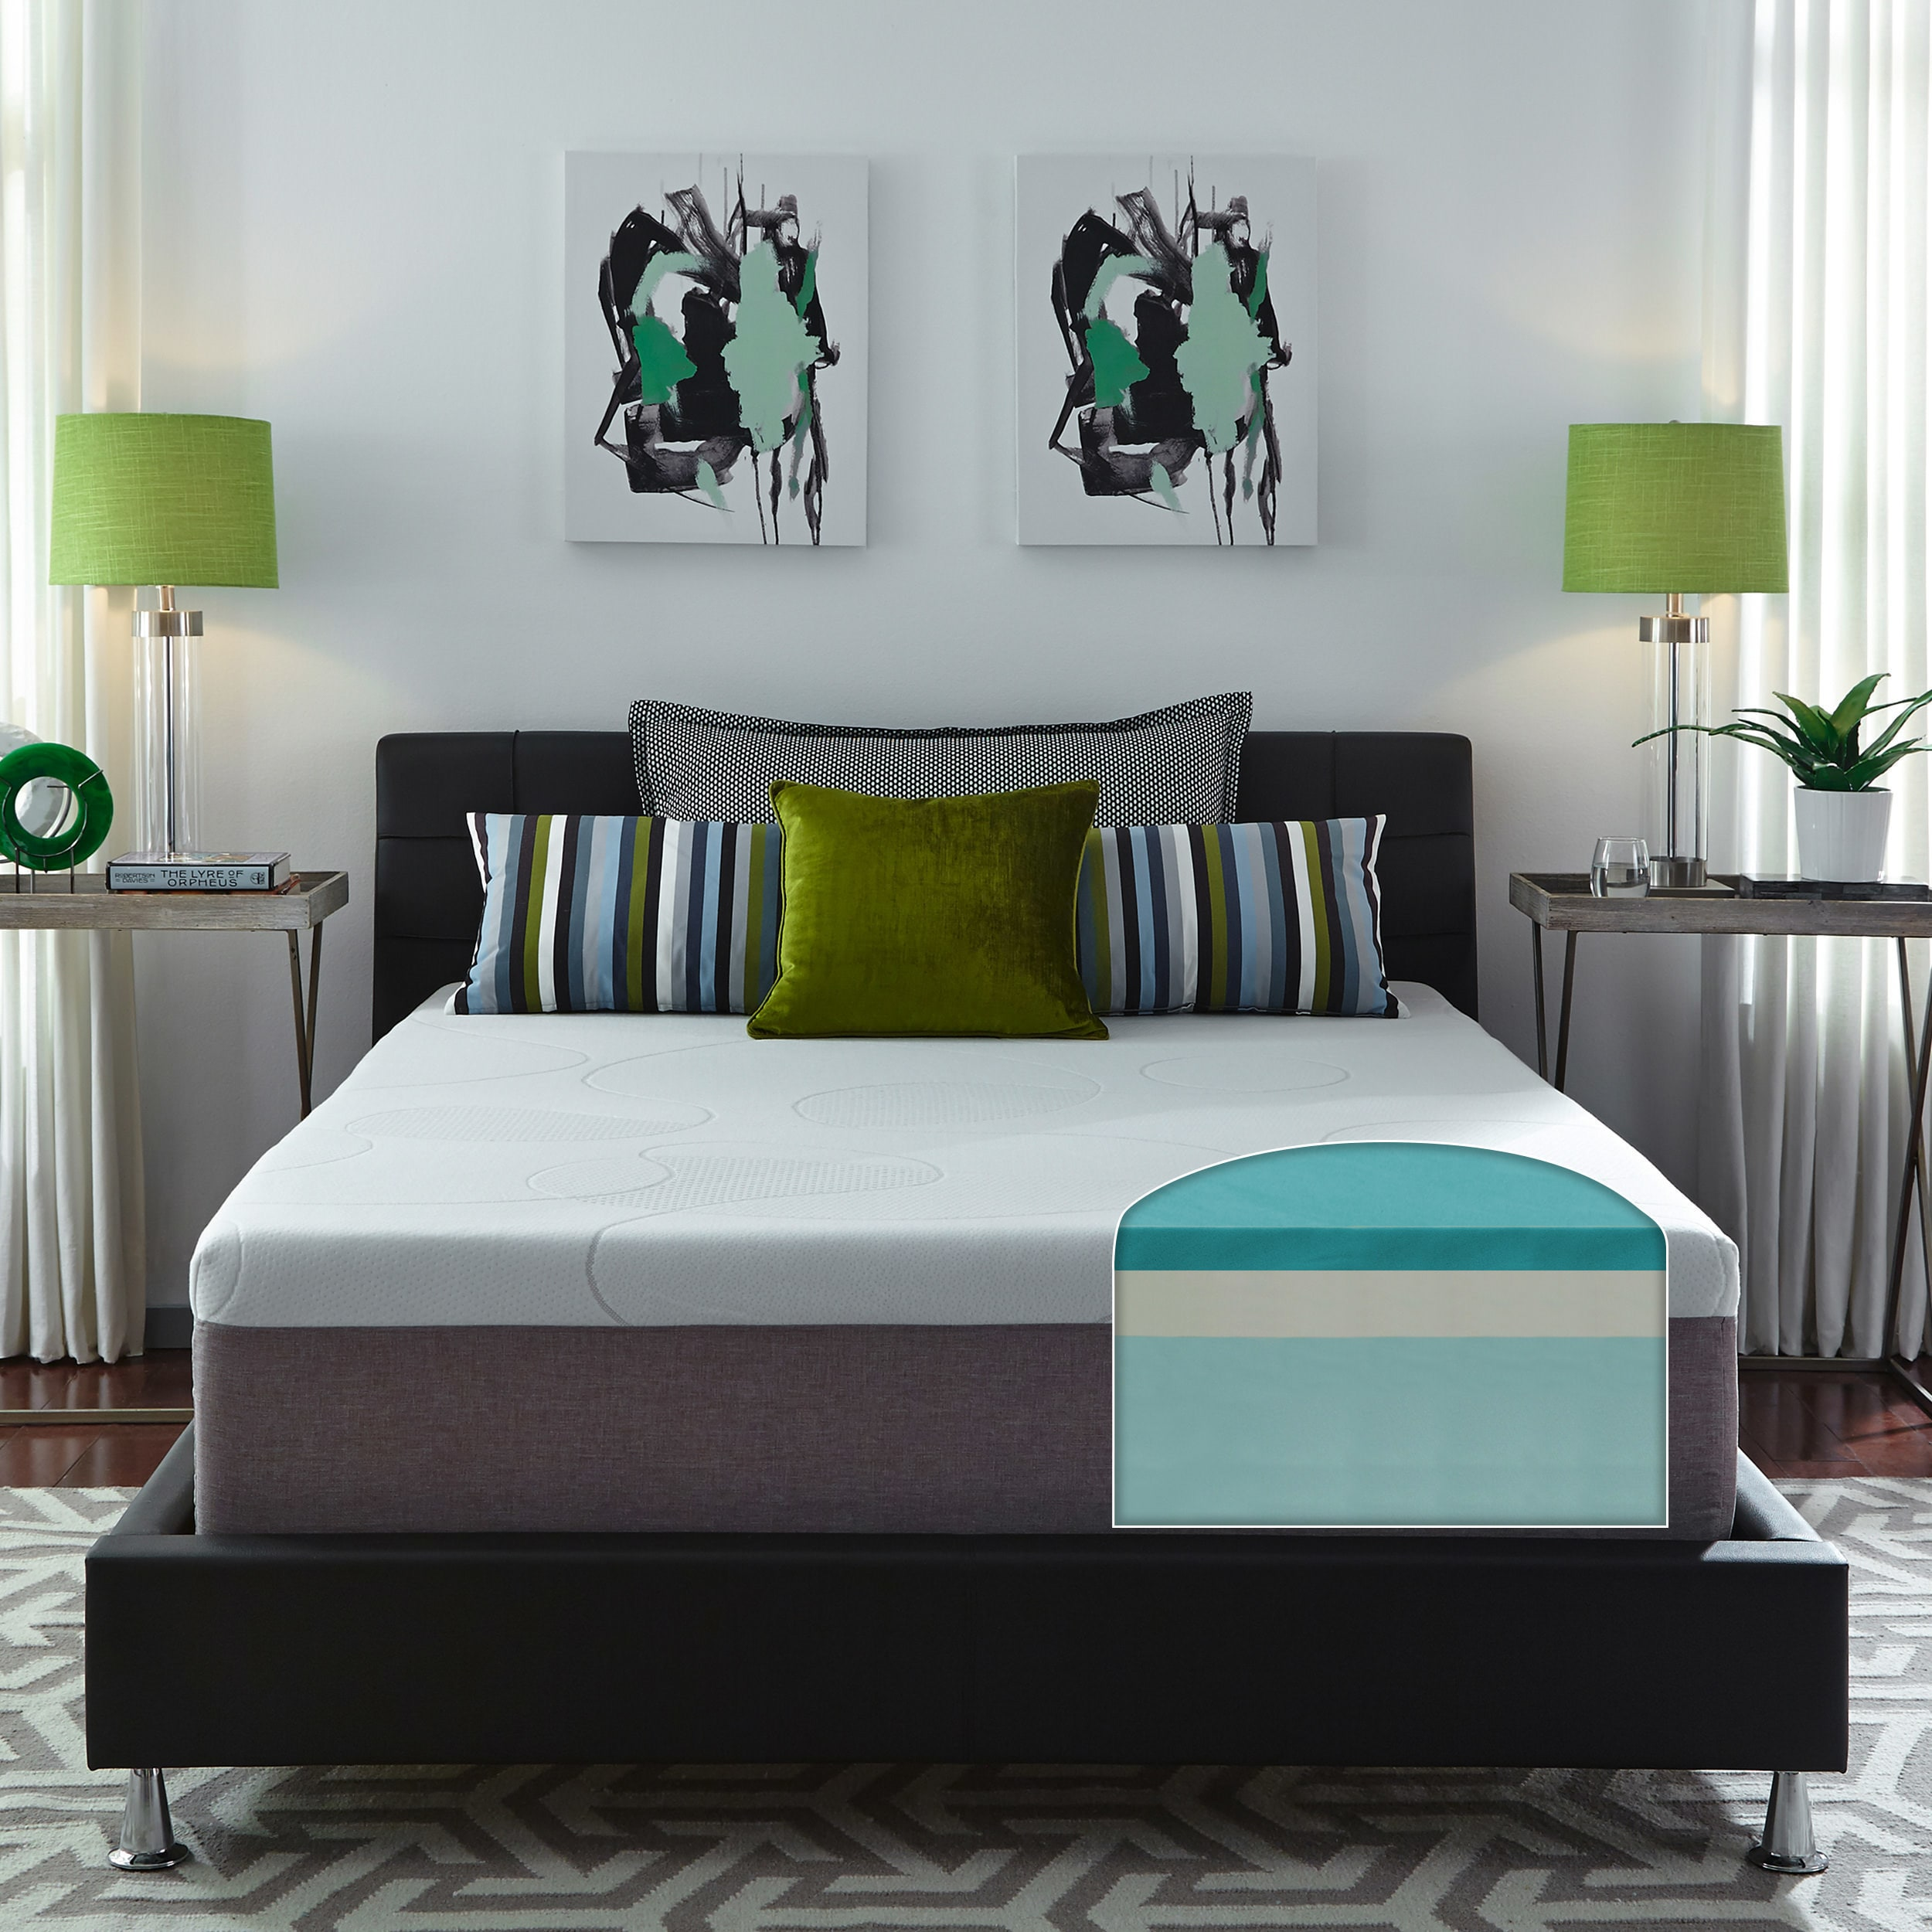 Very Economical Bedroom Nightstands Overstock.com